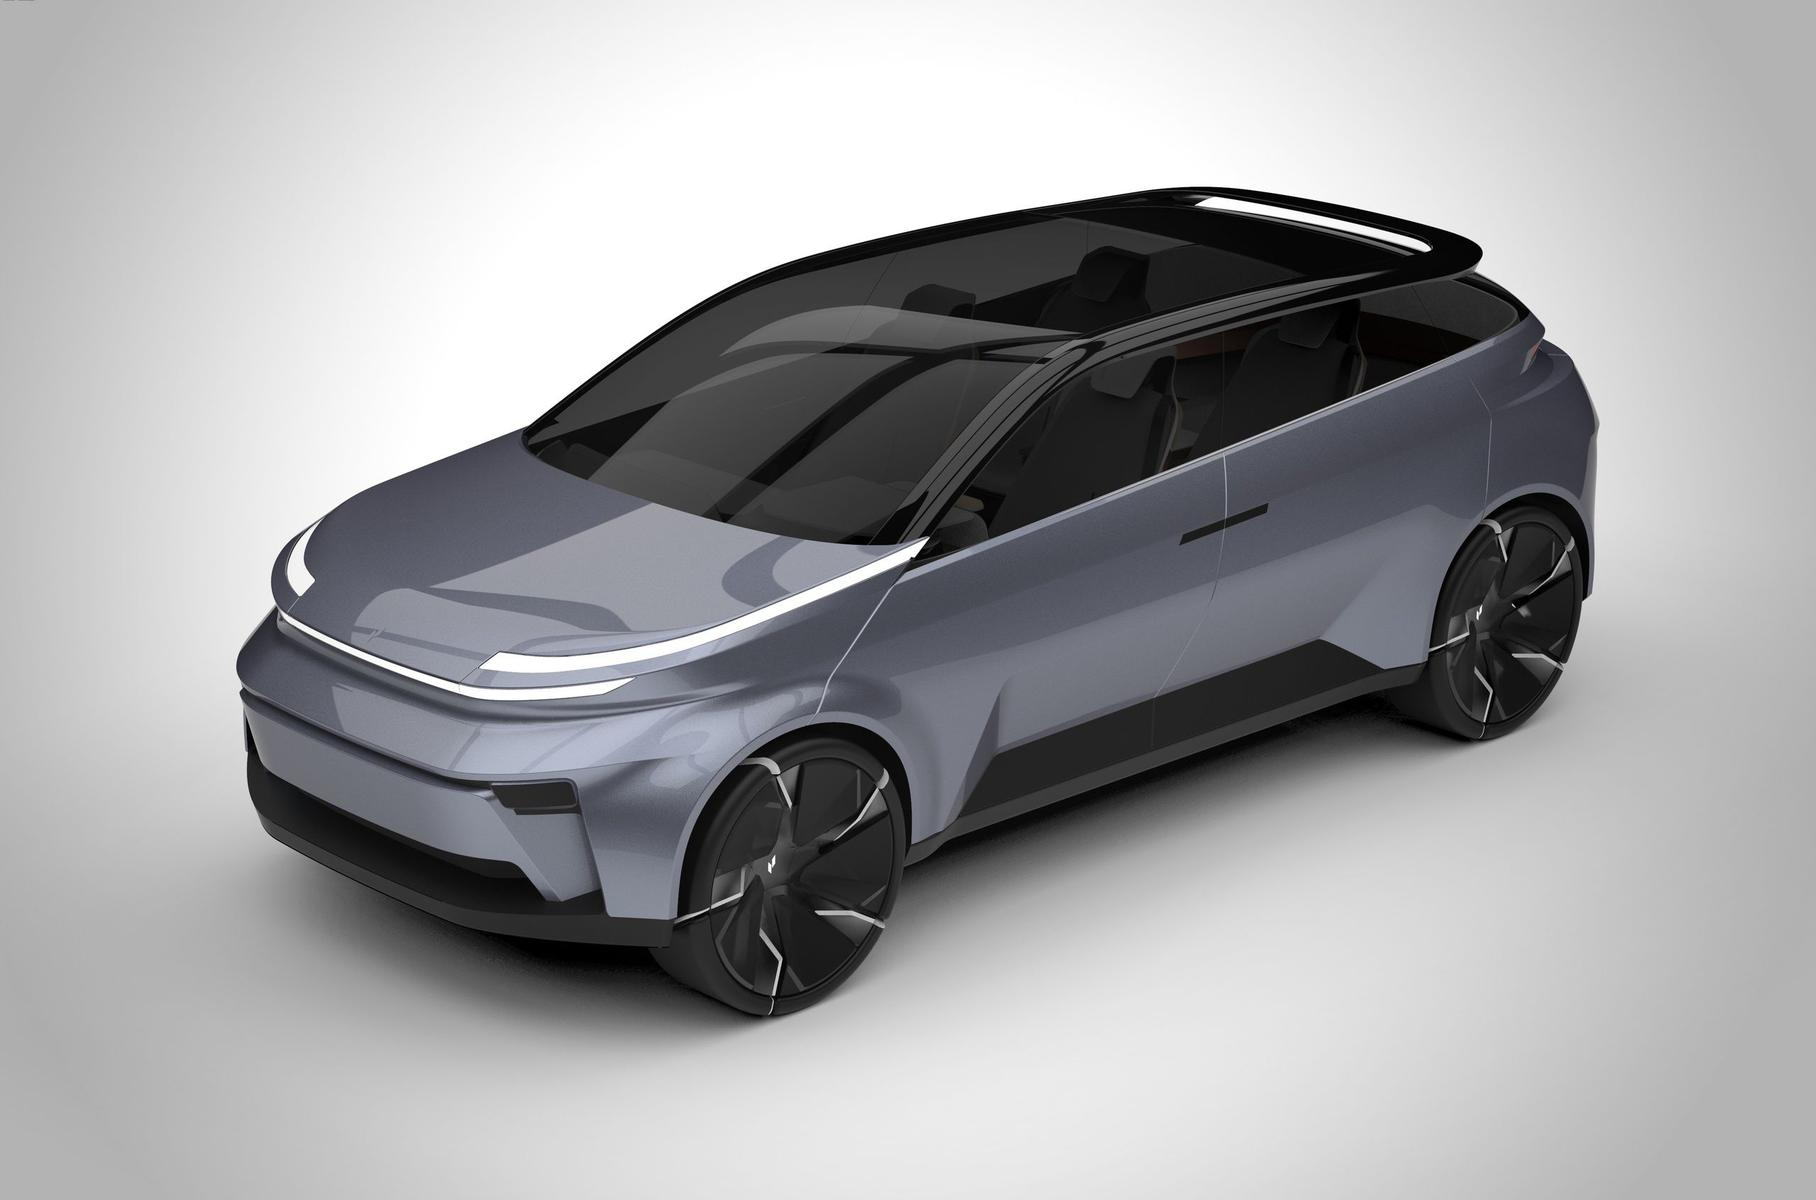 Meet the Project Arrow Concept, an early sketch of an electric car being designed in Canada under the supervision of a group of Carleton University researchers.